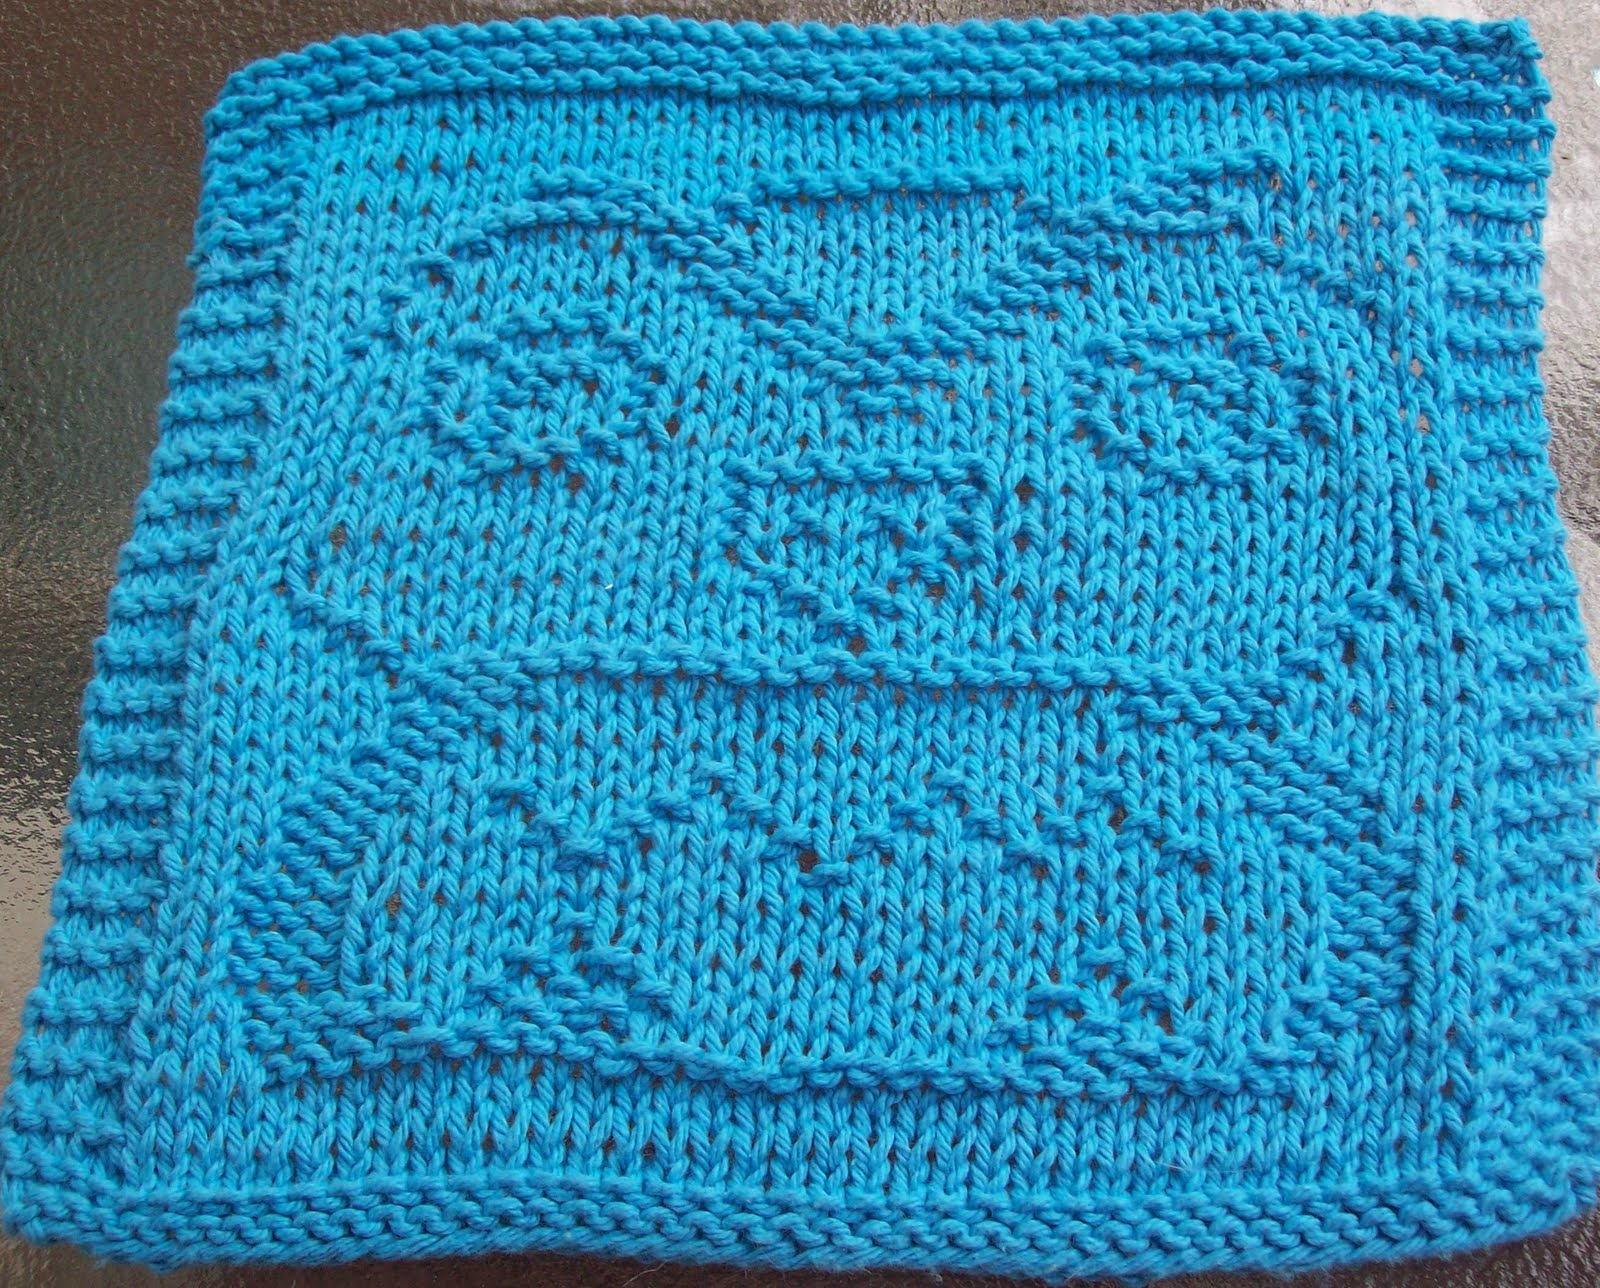 Simple Dishcloth Knitting Pattern : KNIT PATTERNS FOR DISHCLOTHS